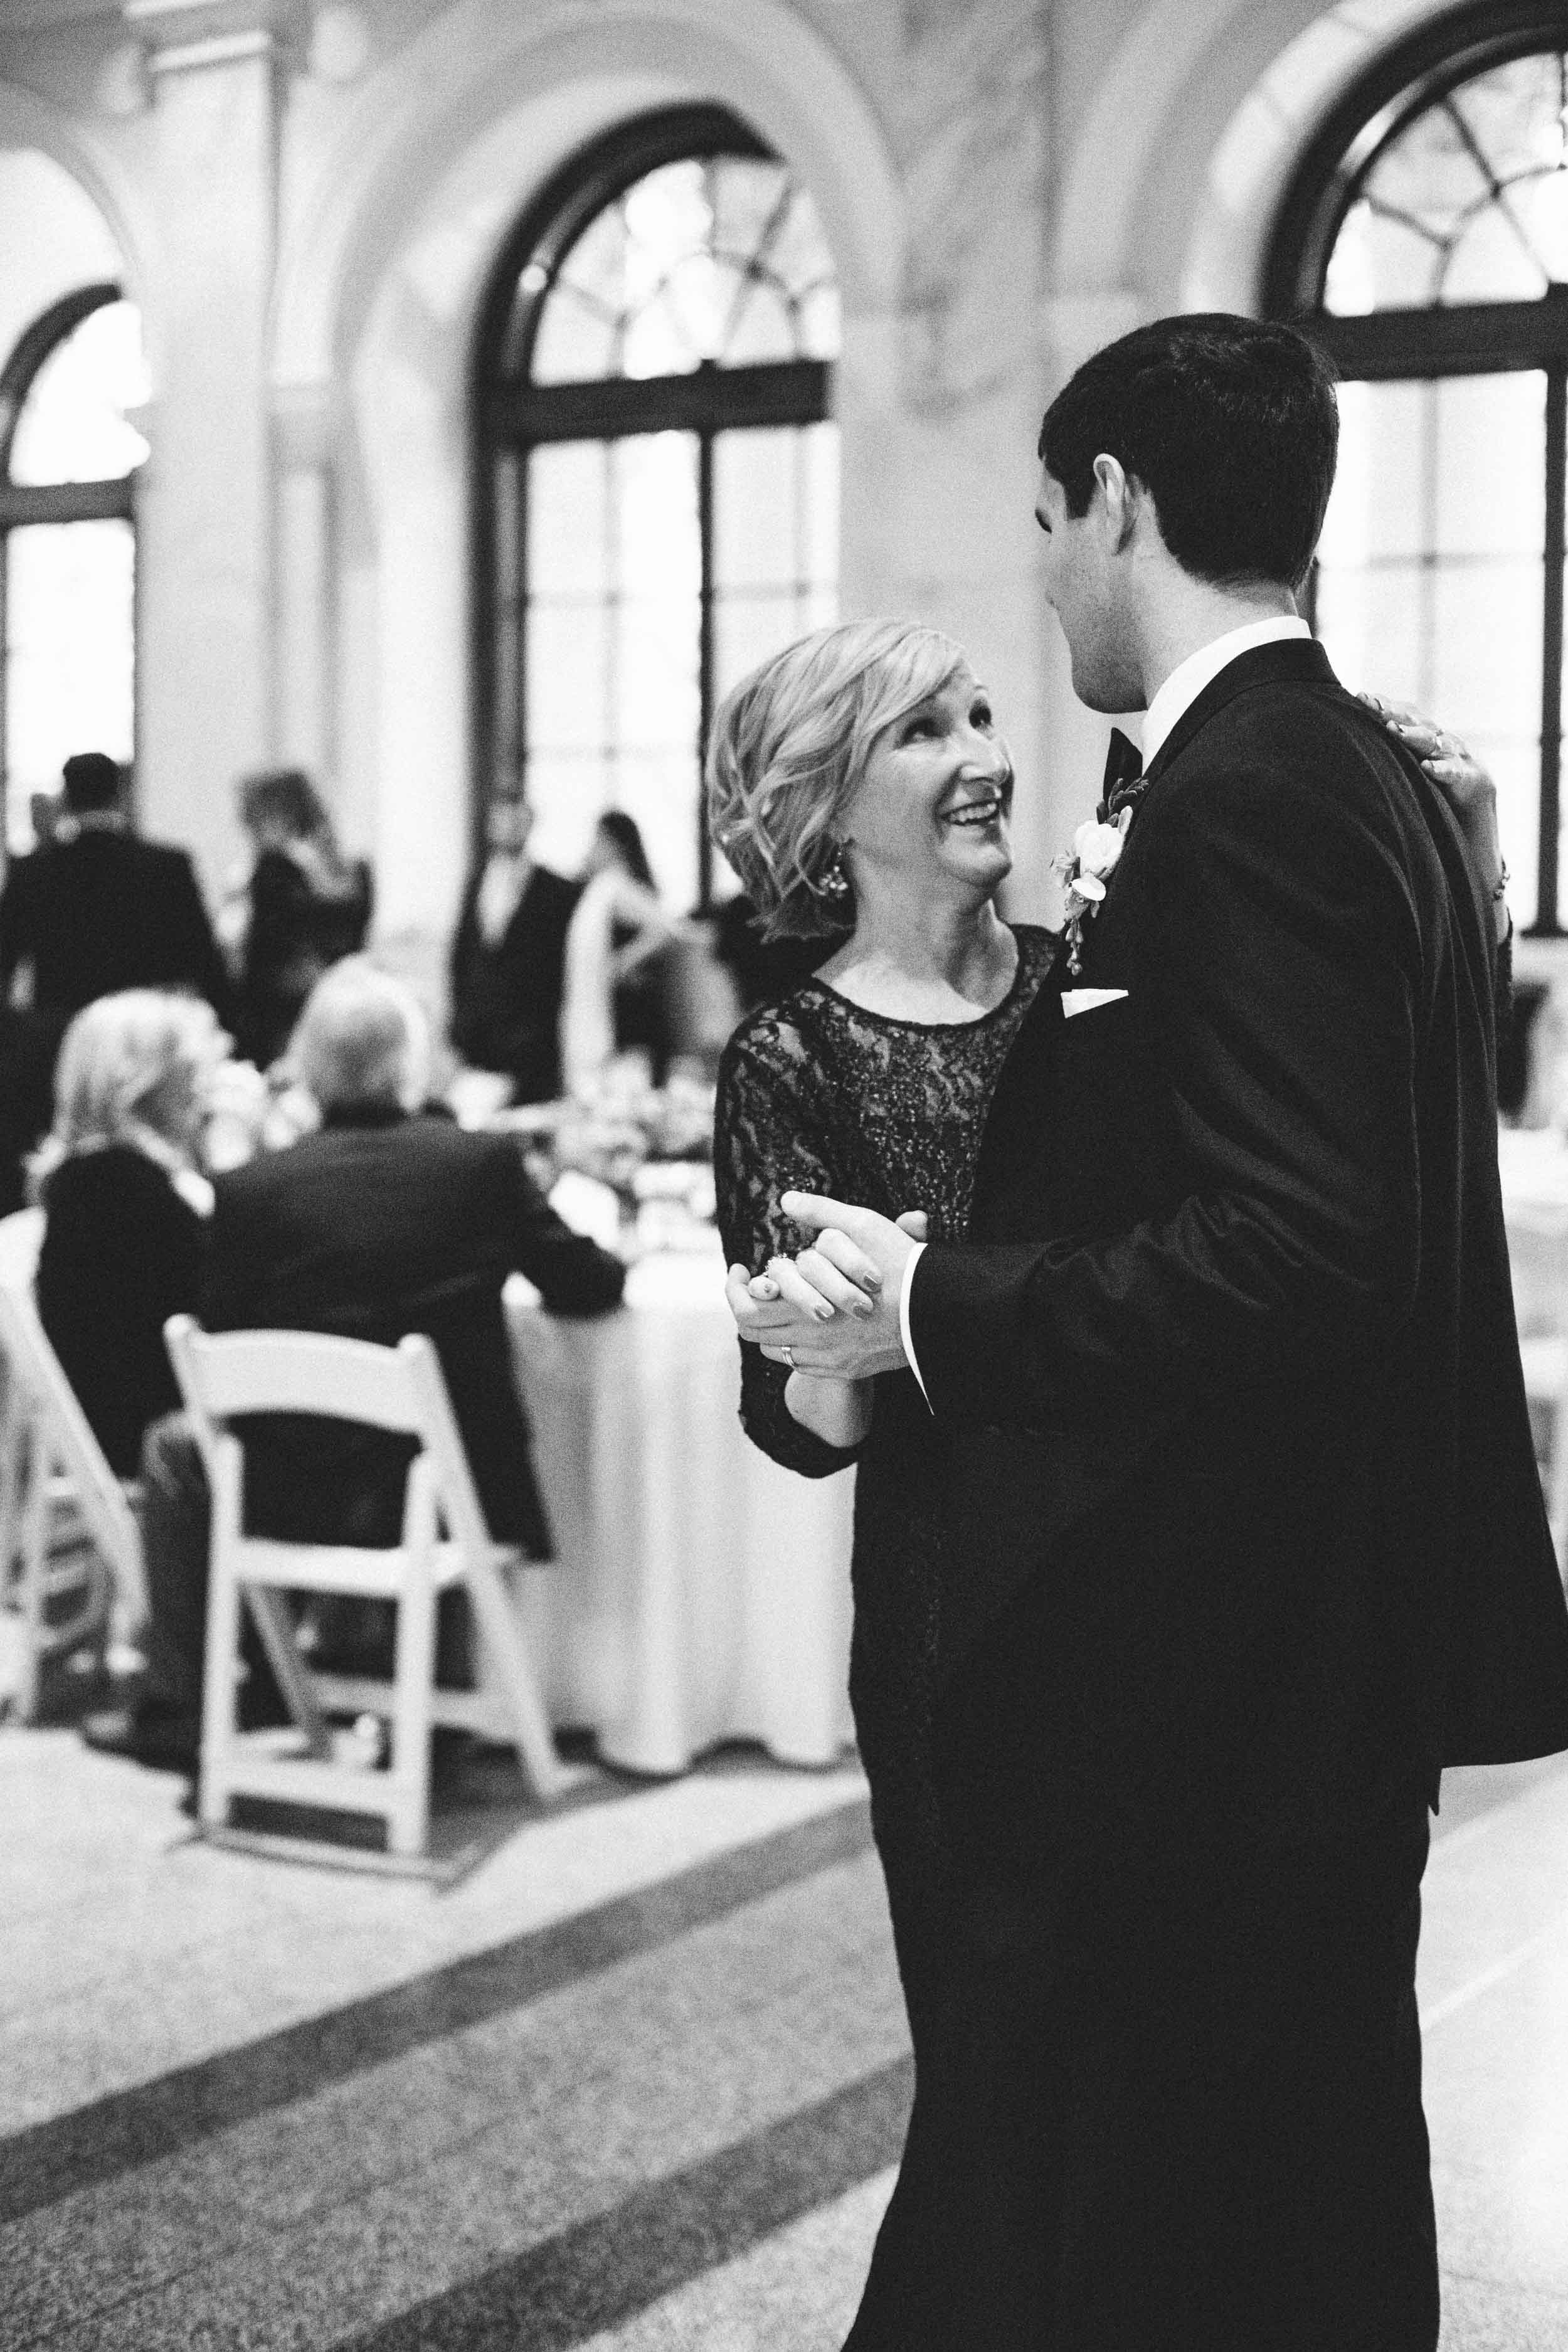 jimmy-rowalt-atlanta-wedding-photography-143.jpg